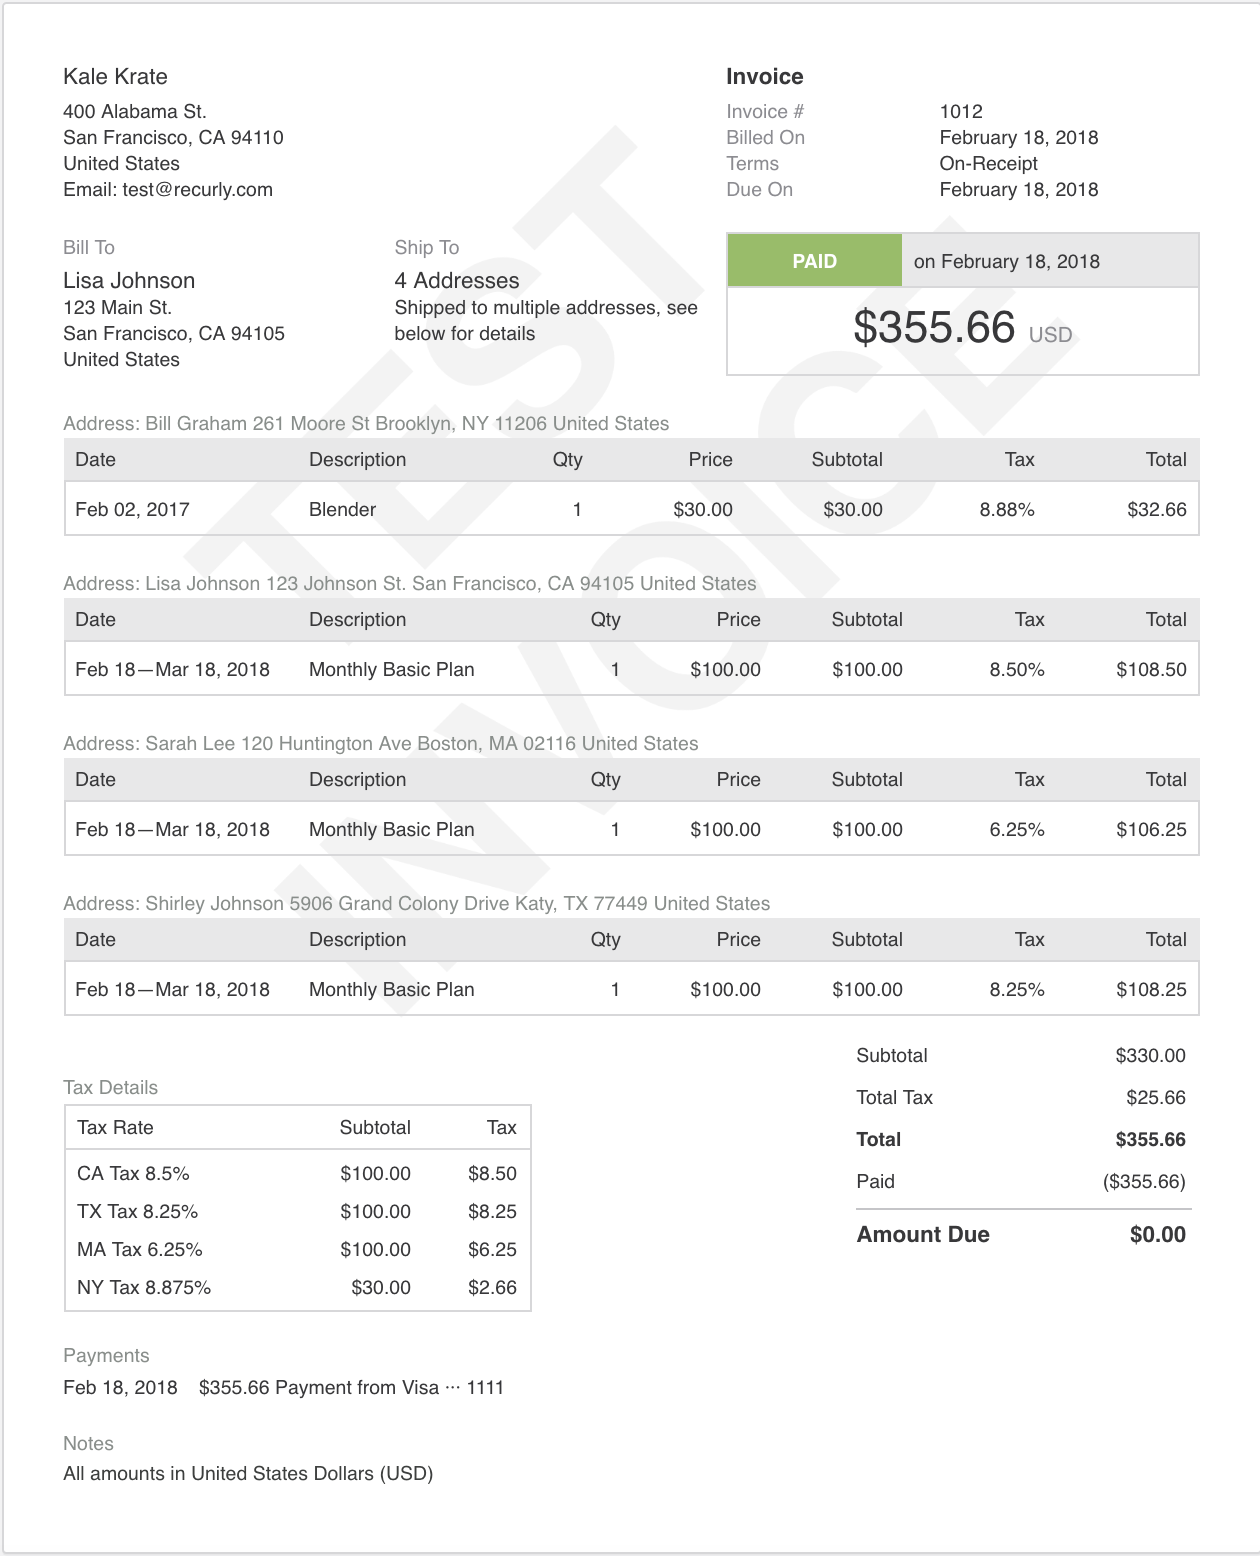 This is the invoice display for a multiple shipping address purchase example, outlined above.